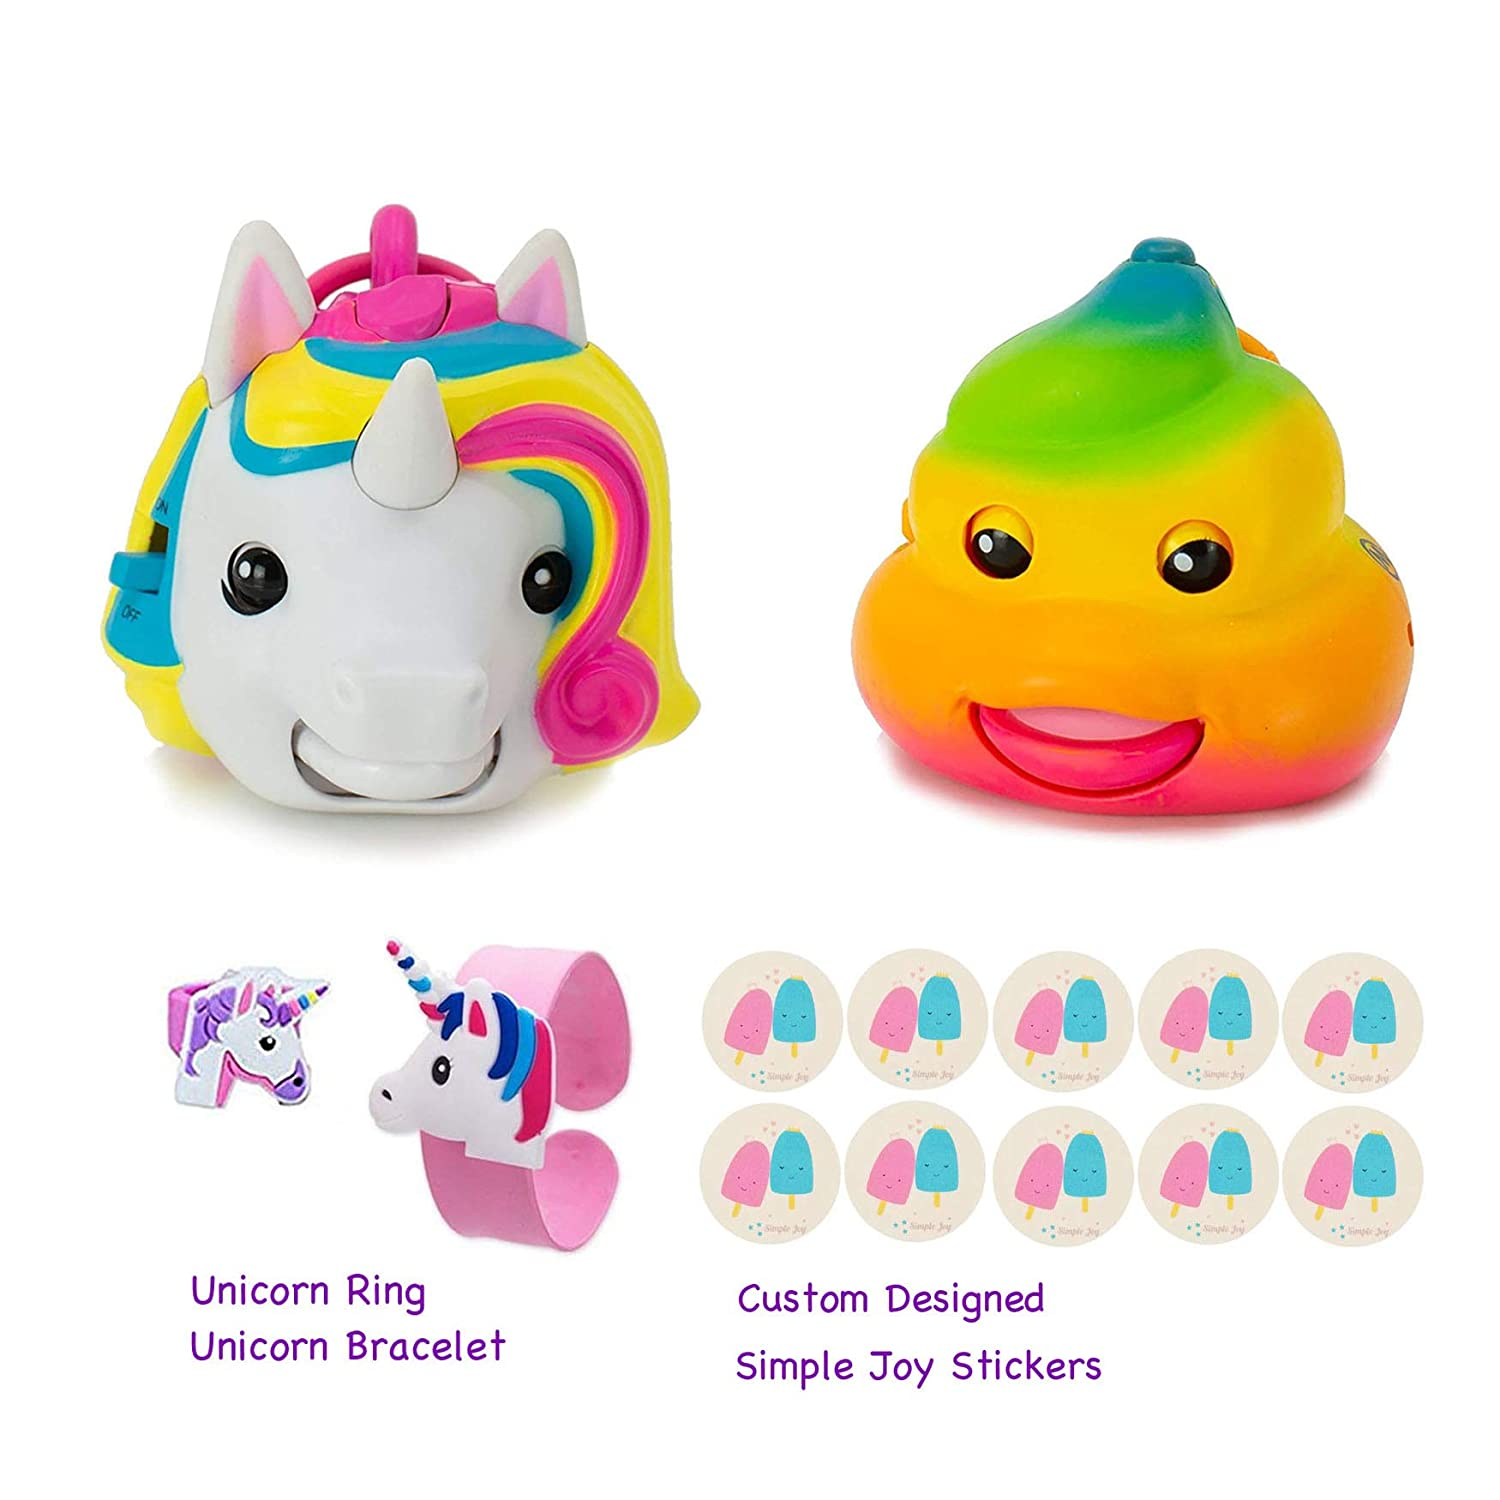 Mojimoto Animated Talking Mojis Repeating Talk Back Toy That Records Repeats Lip syncs to Music Unicorn Rainbow Poo 2 Pack Set Free Unicorn Gift Simple Joy